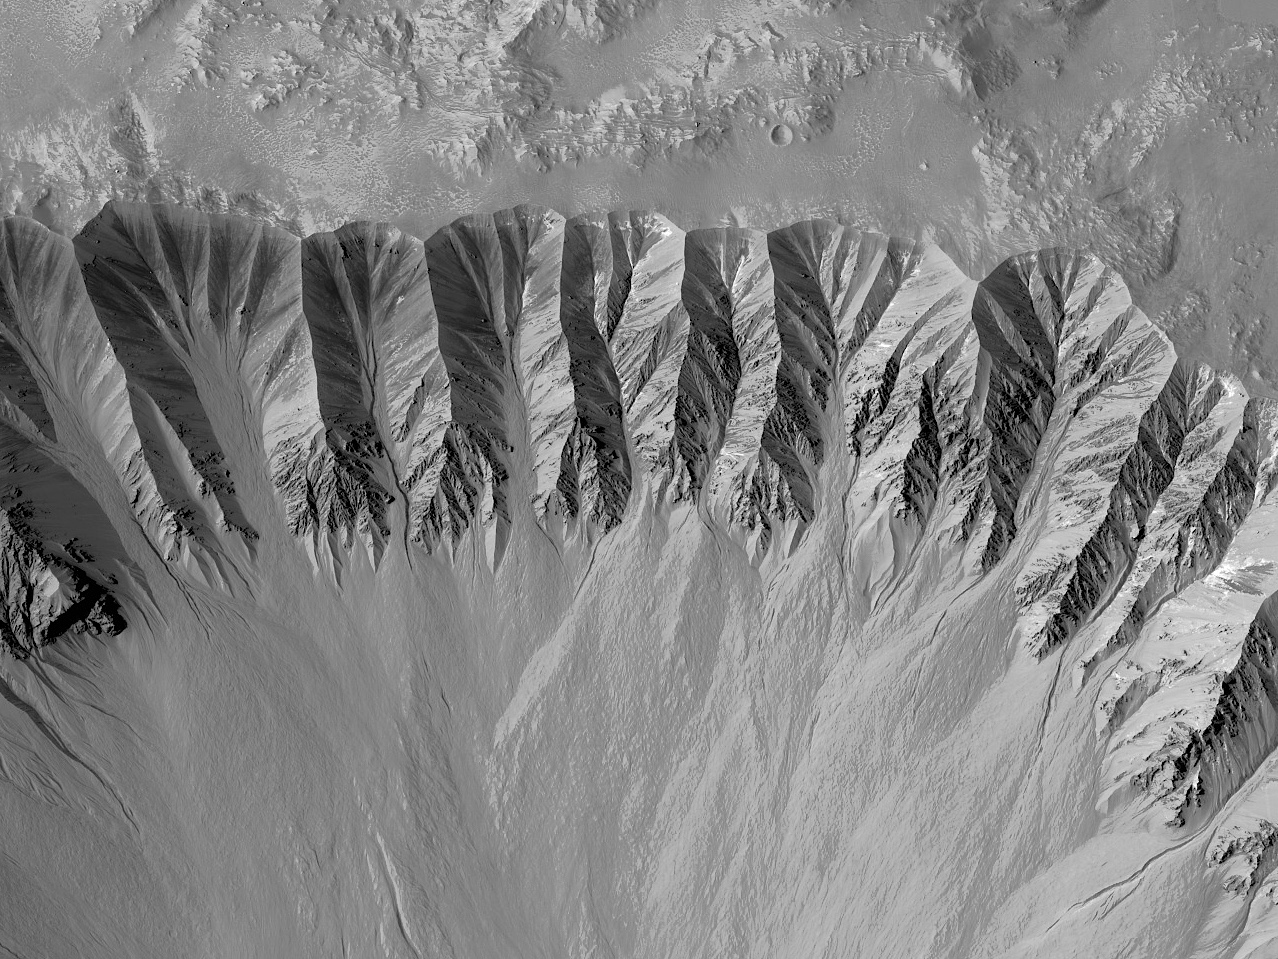 Monitoring Gullies in Gasa Crater